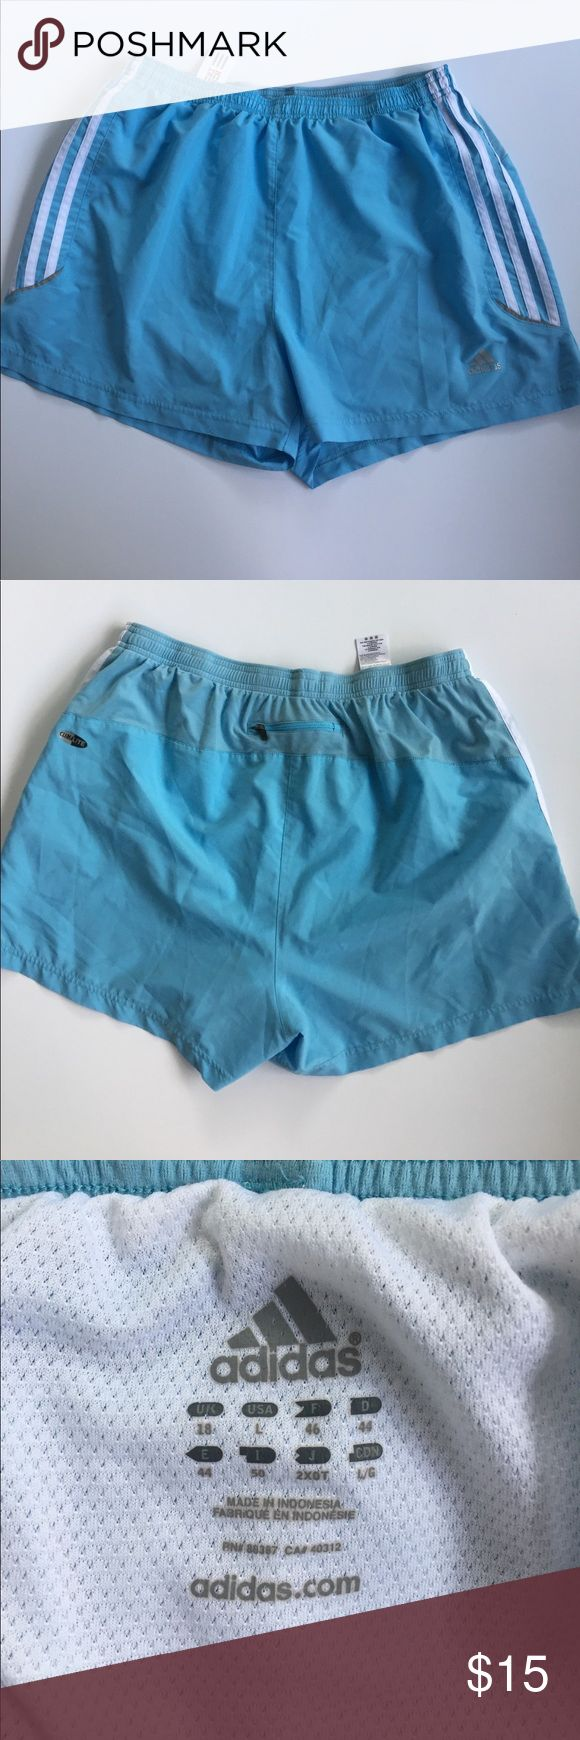 Adidas light blue shorts This is a pair of light blue Adidas shorts. Size large. Elastic waist. Small zippered pocket in the back. Gently worn condition. No stains or holes. adidas Shorts